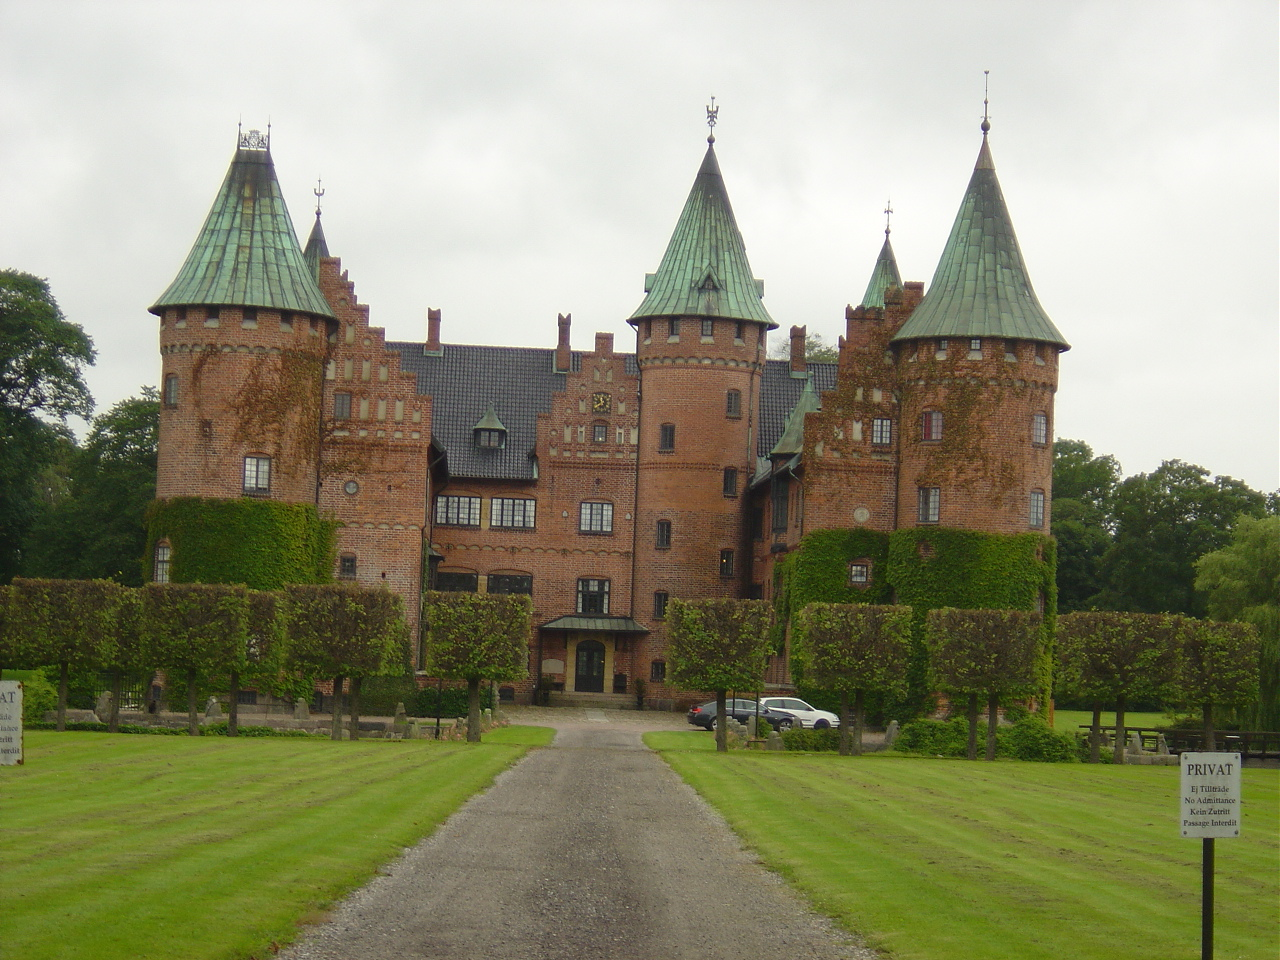 Castles images Trolleholm Slott HD wallpaper and background photos ...